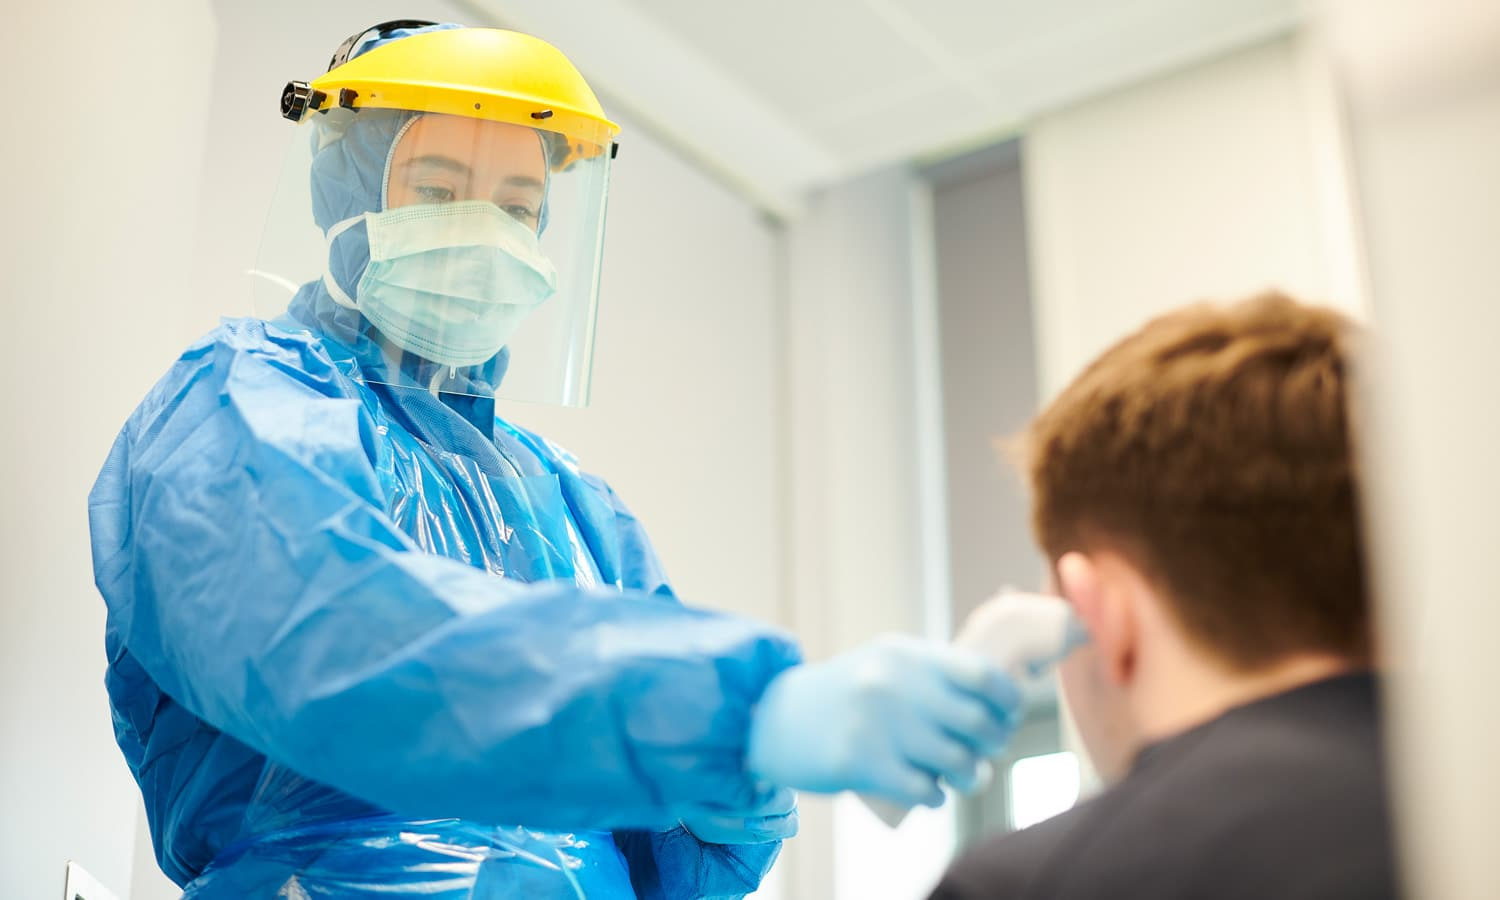 The FDA Reissued Guidelines For PPE In Hospitals And Clinics